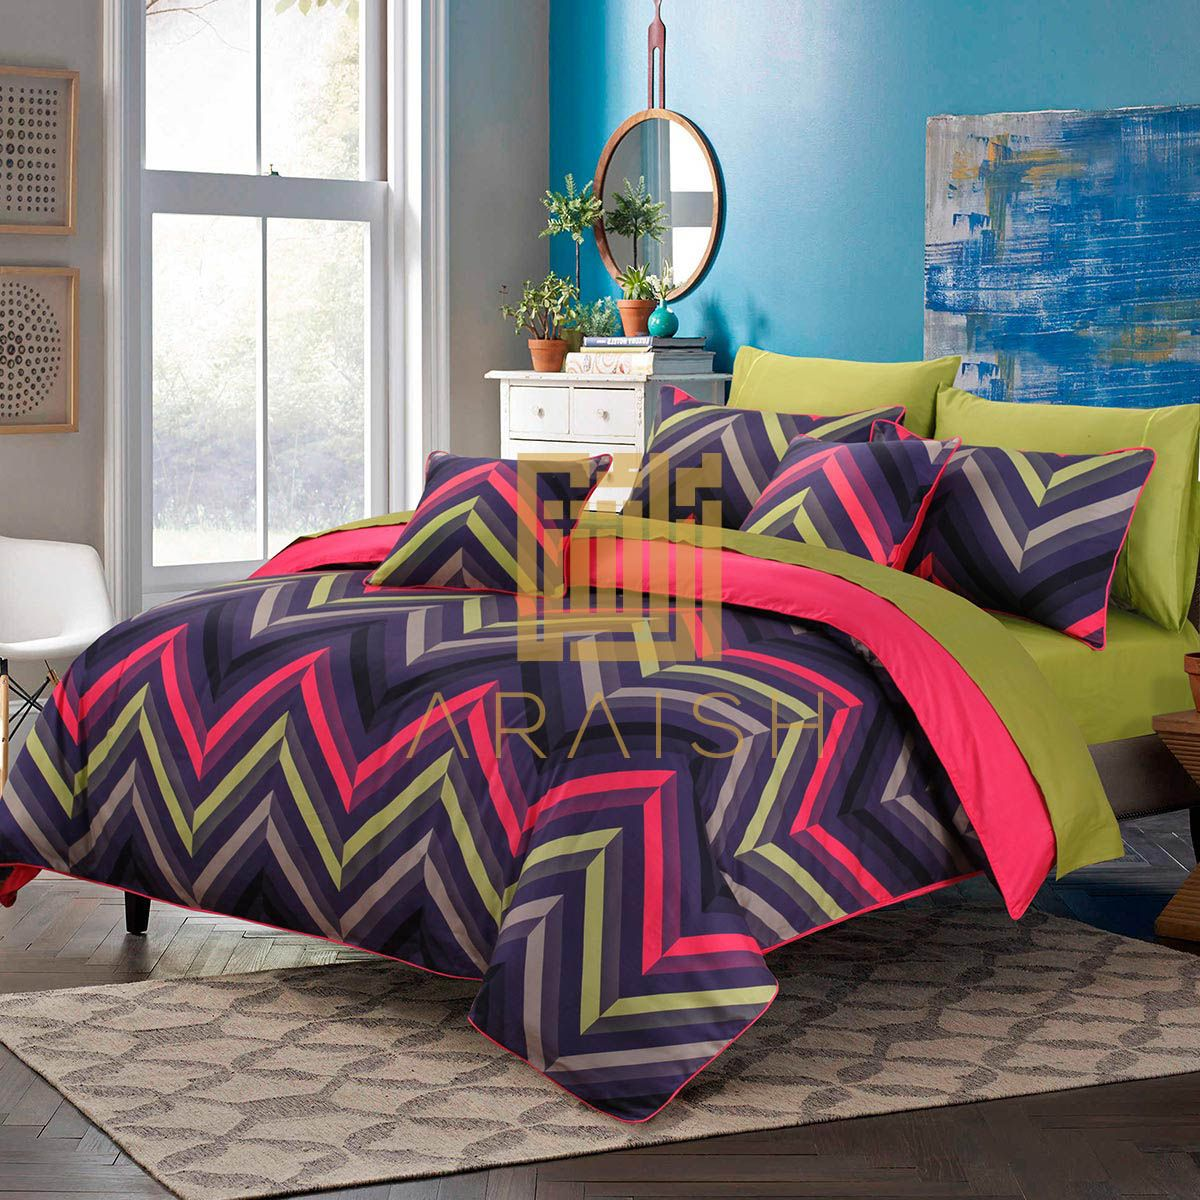 56625572f6 Luxury Bedding Collections, Luxury Bedding Sets, Printed Cushions, Neon  Colors, Bed Sheets